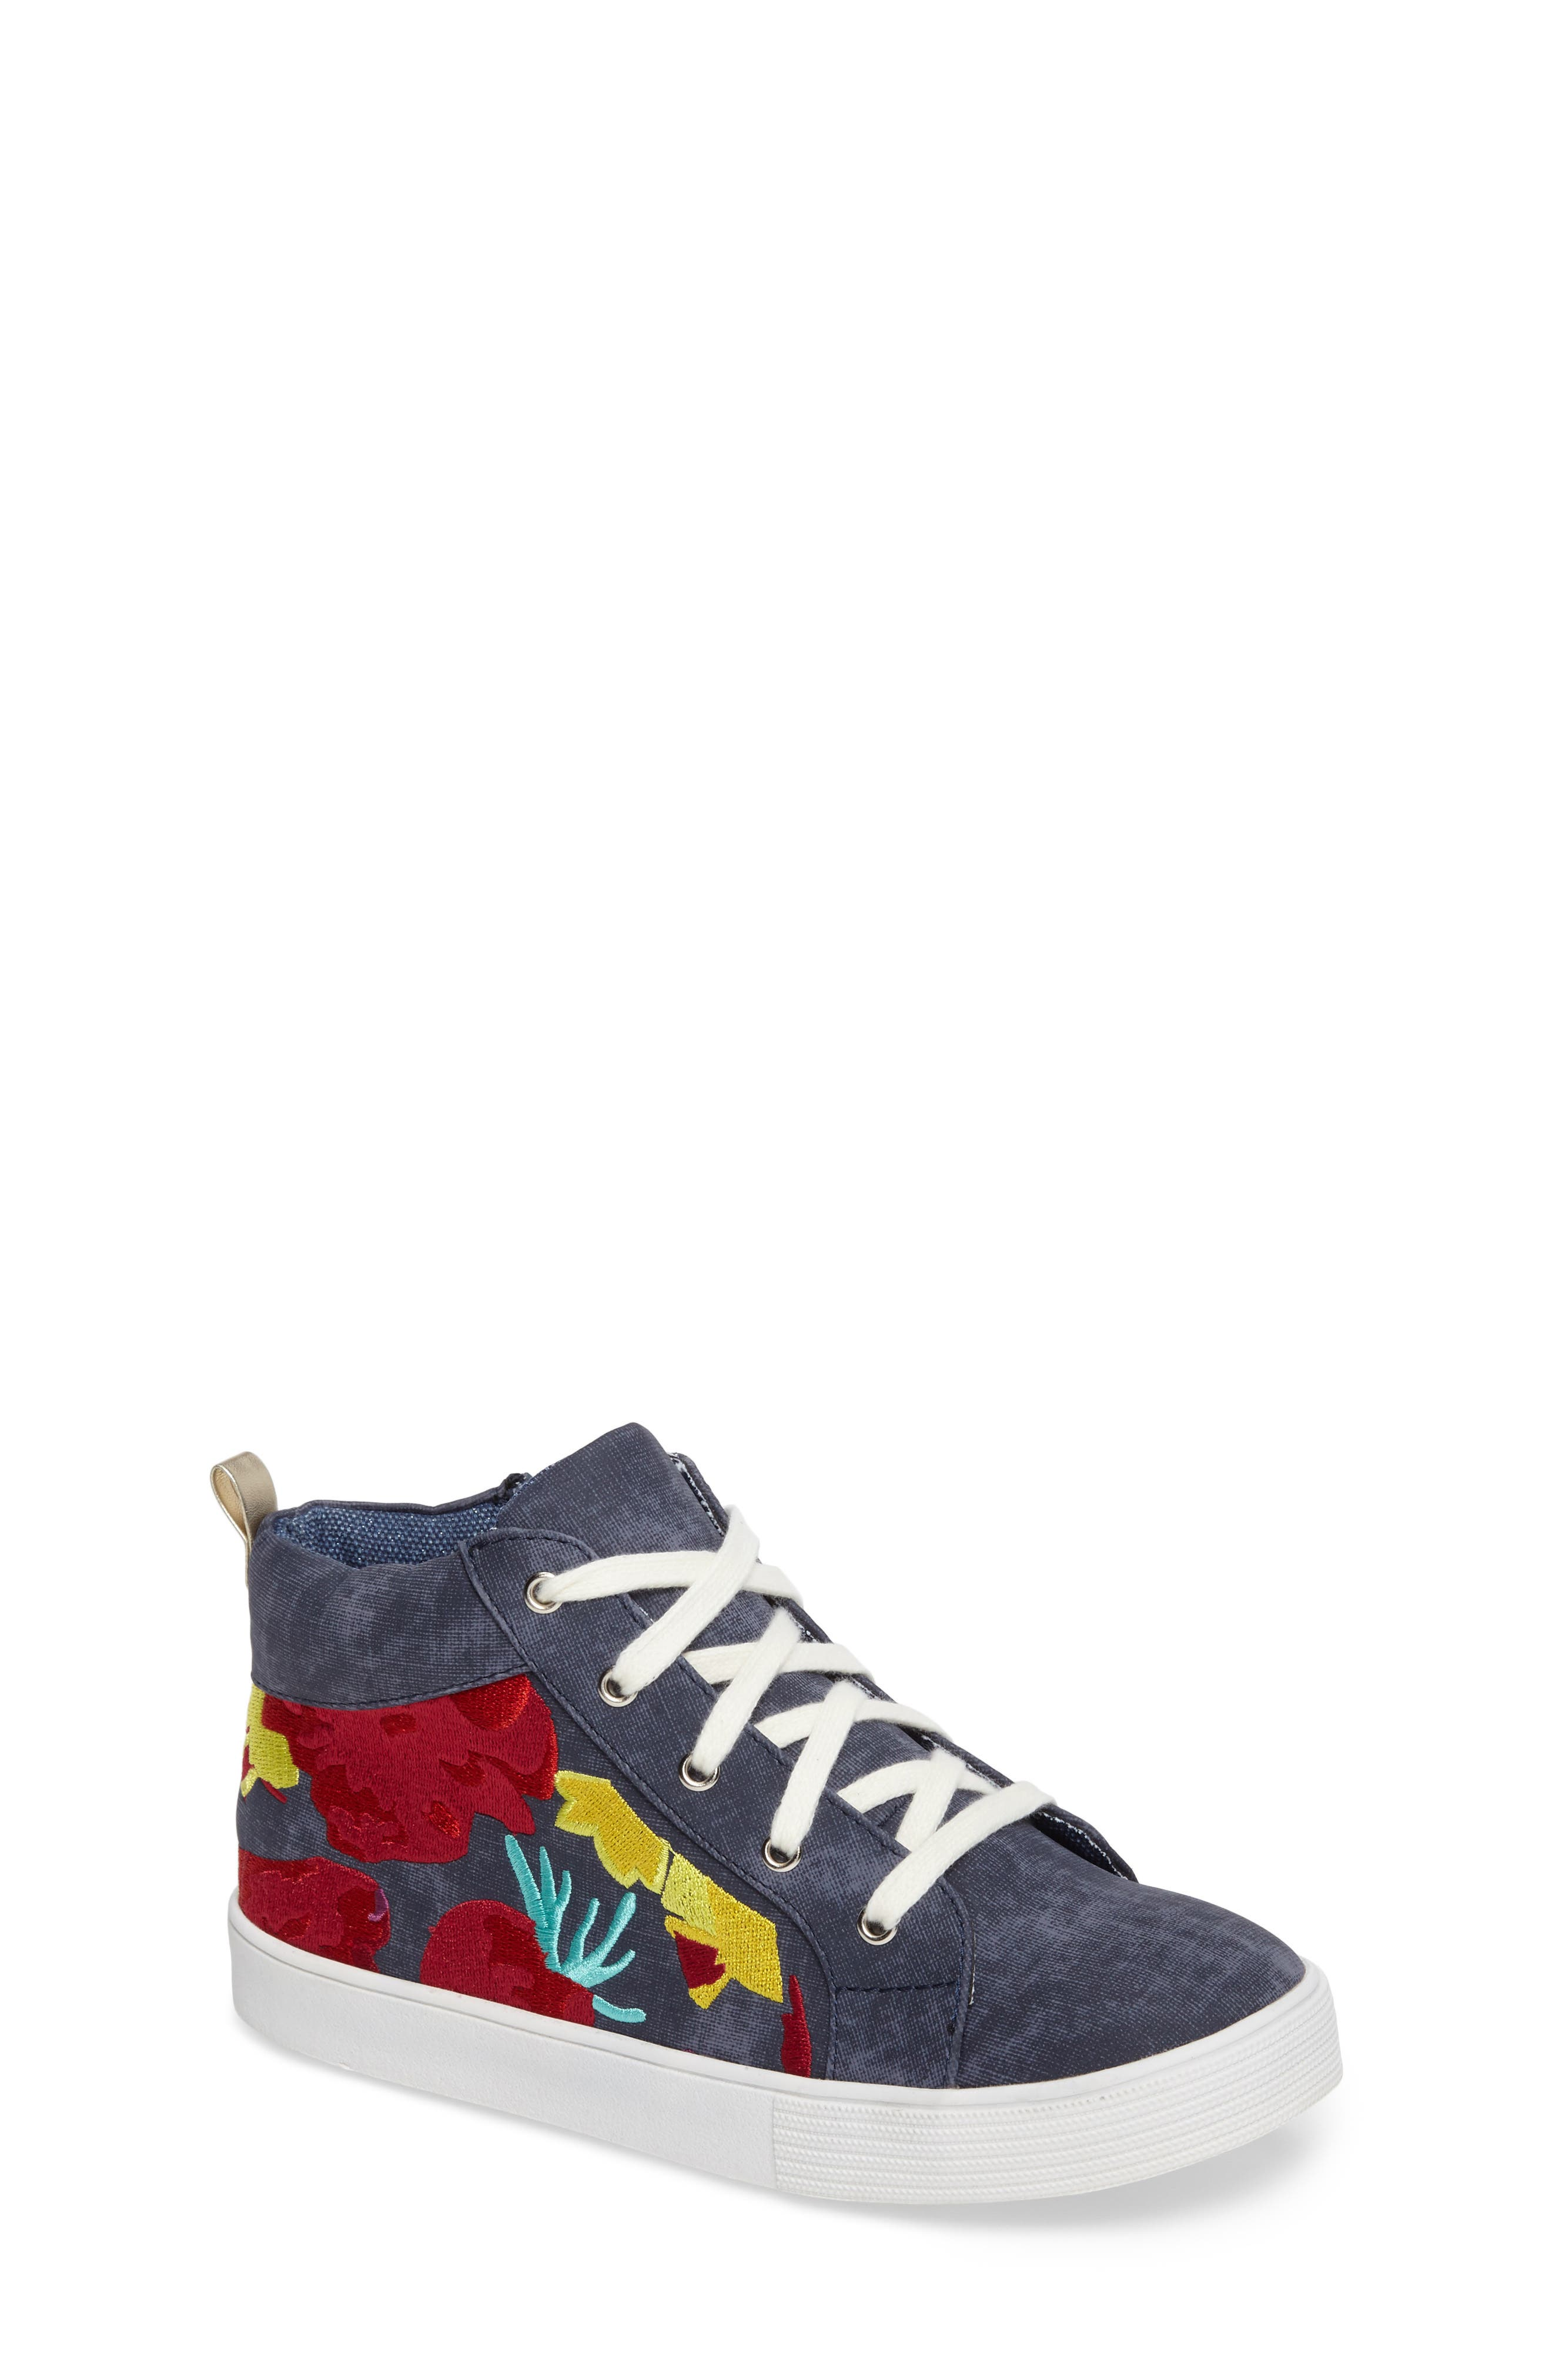 KENNETH COLE NEW YORK Kam Embroidered High Top Sneaker